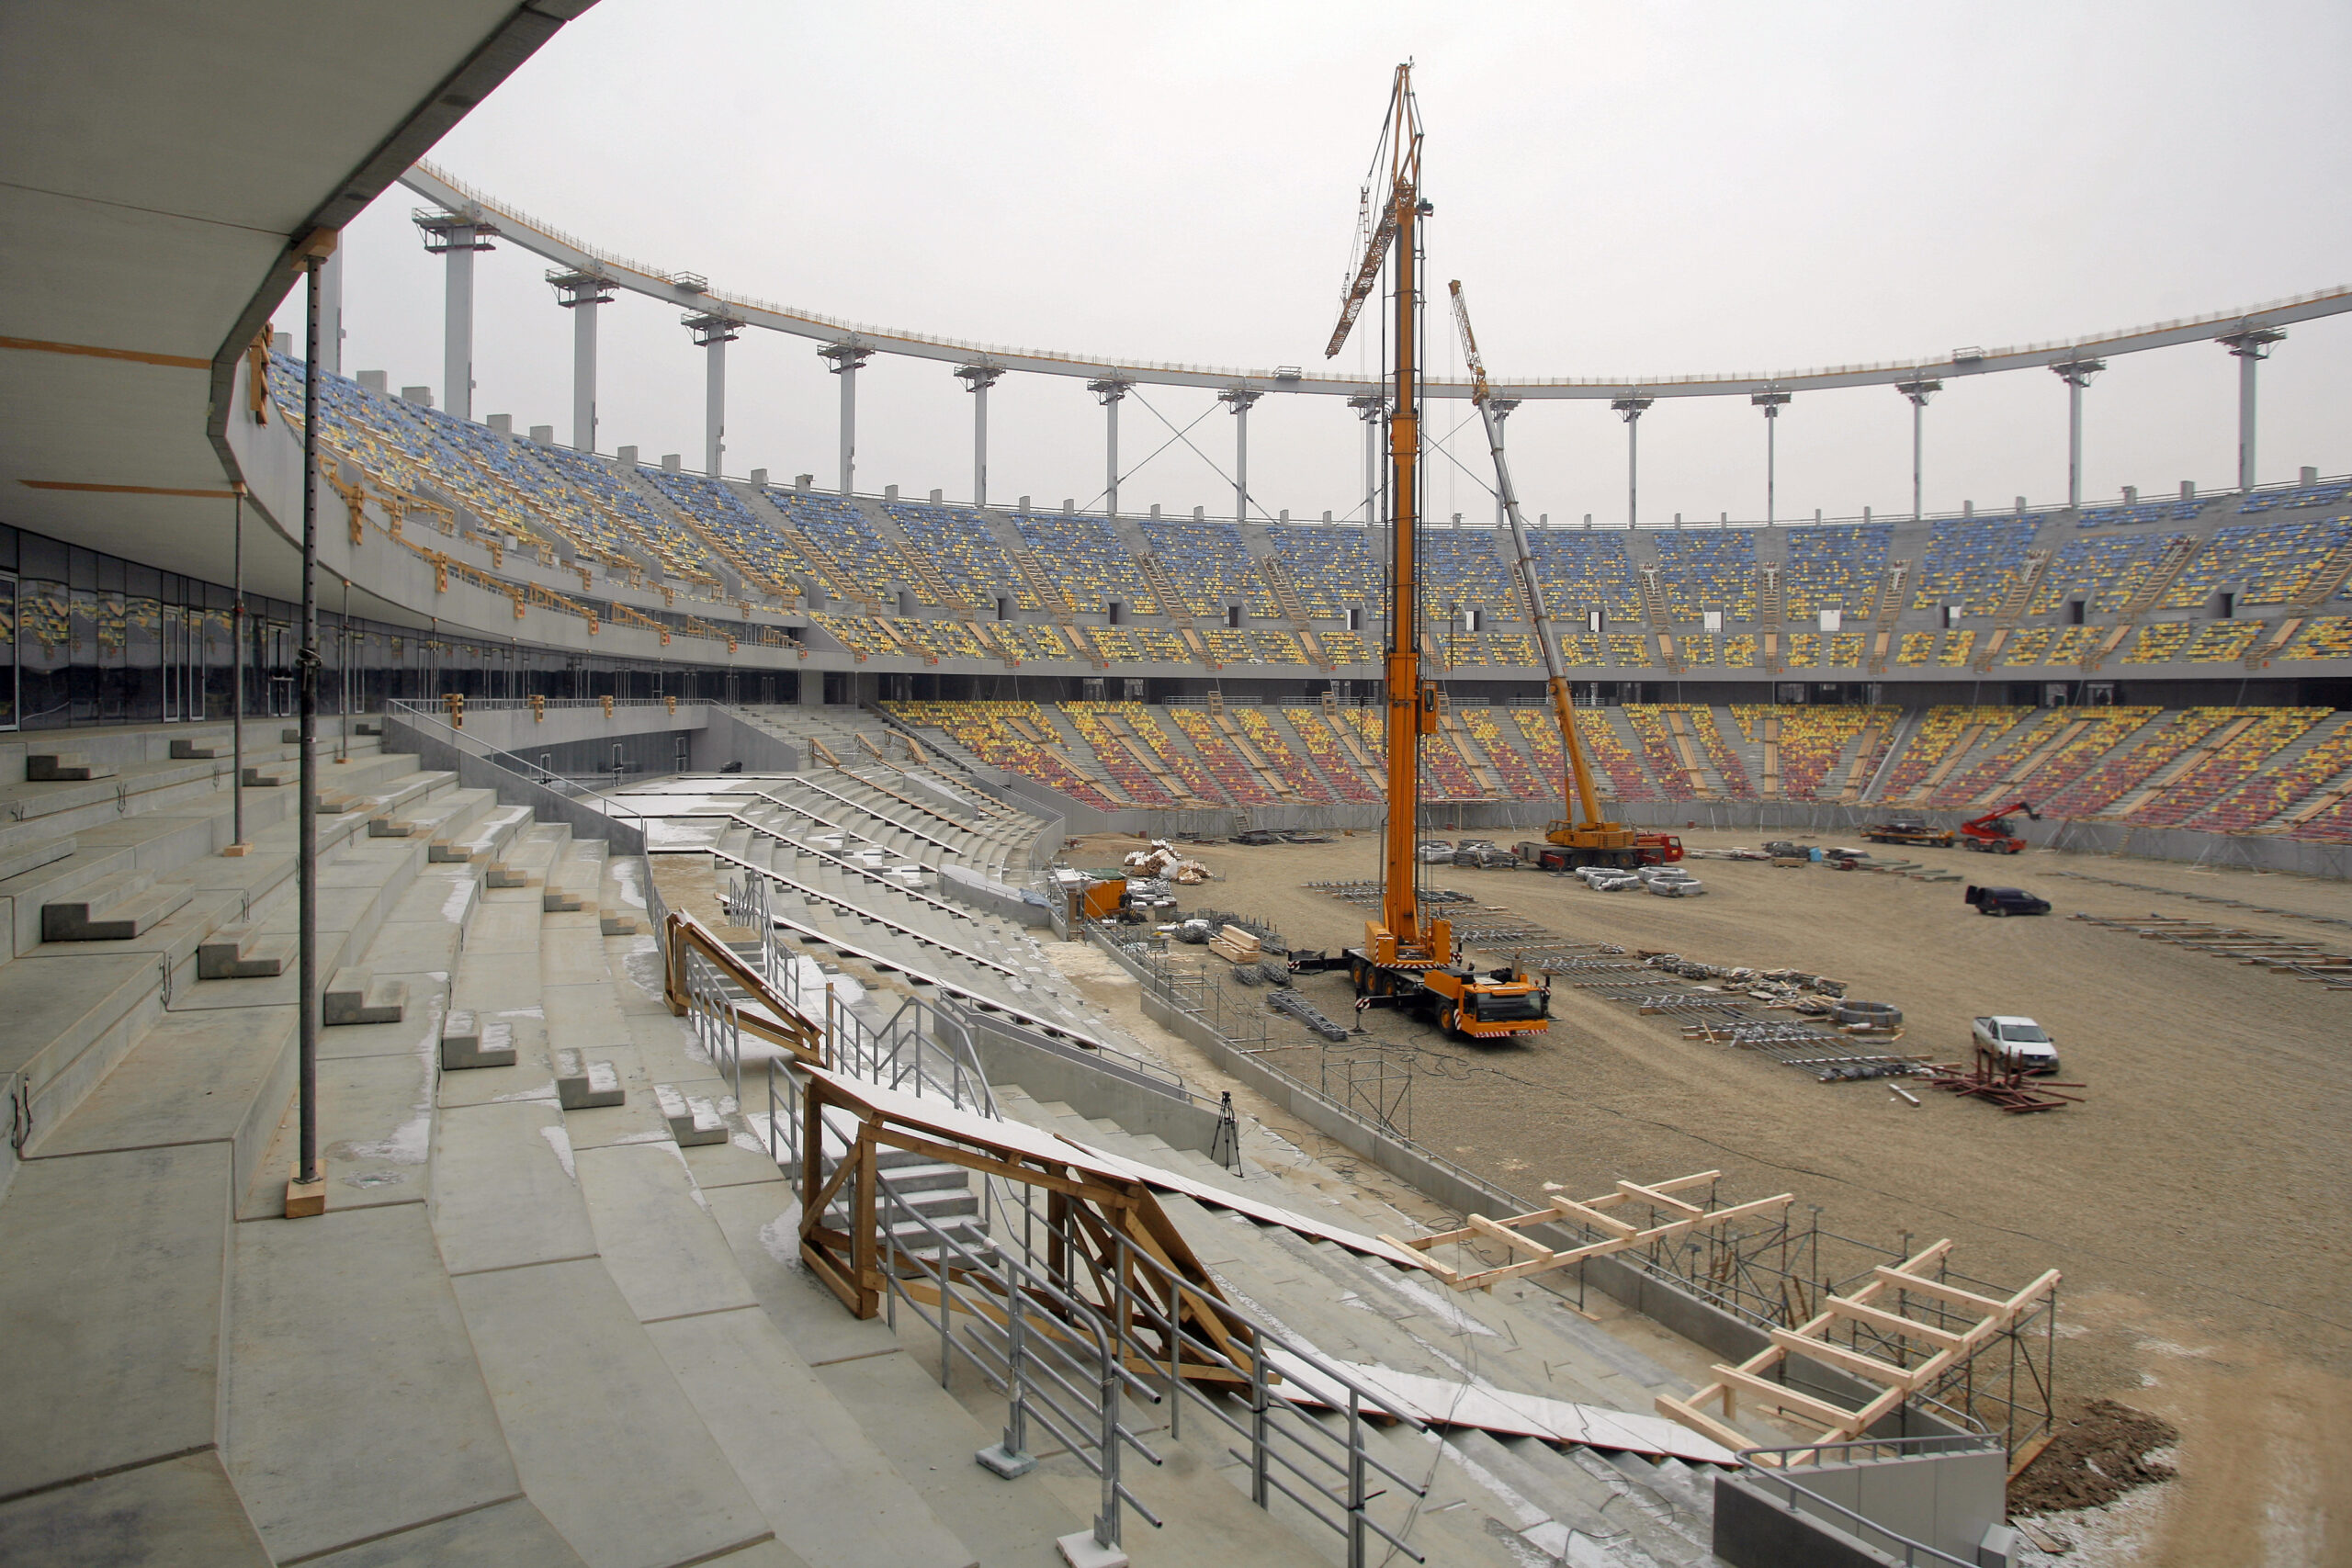 Construction site of a stadium during winter